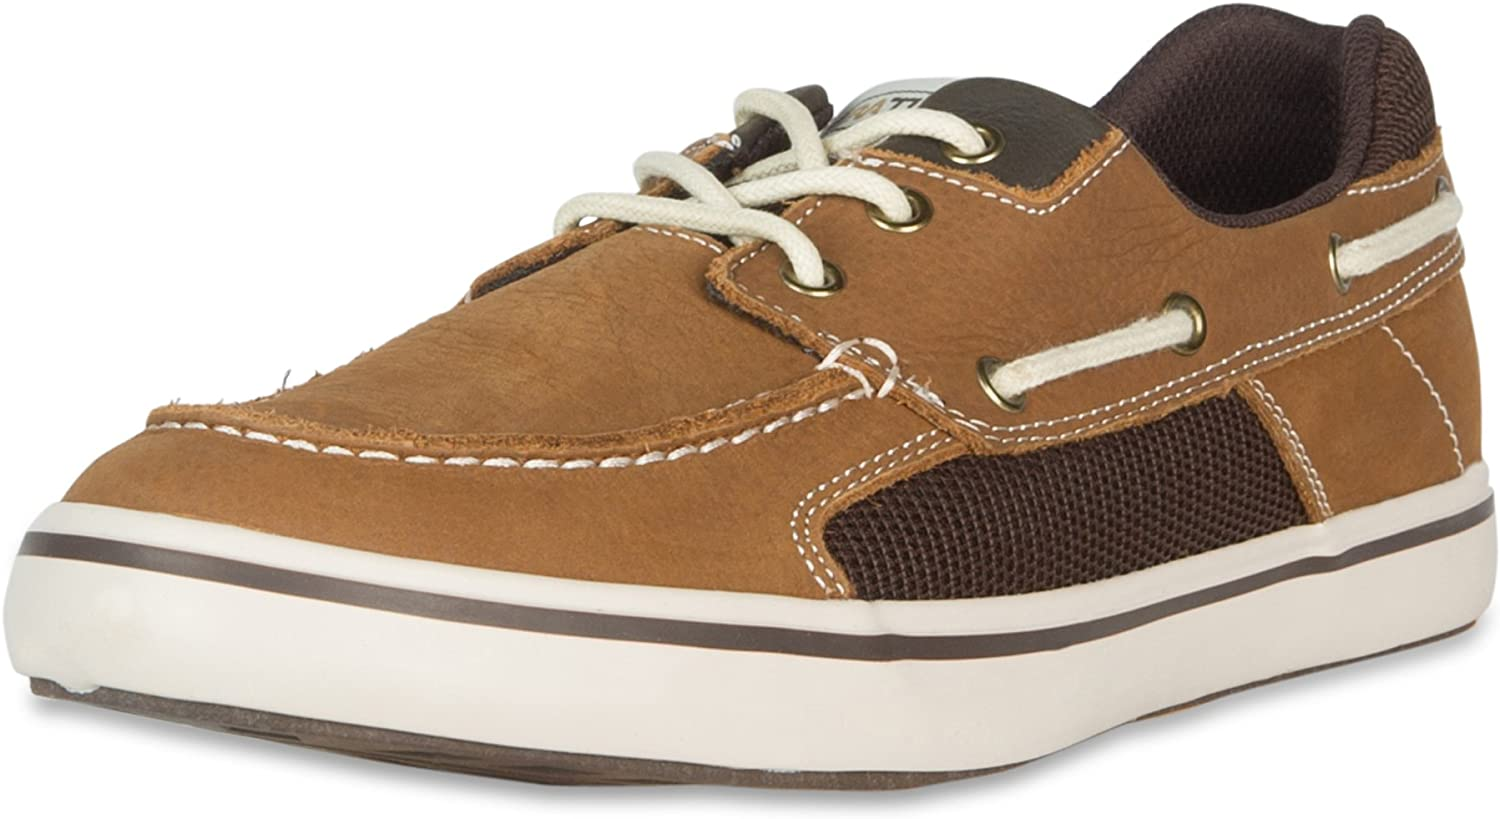 Xtratuf Finatic II Men's Leather Deck 10 Shoes Indianapolis Mall Tan 2021 new